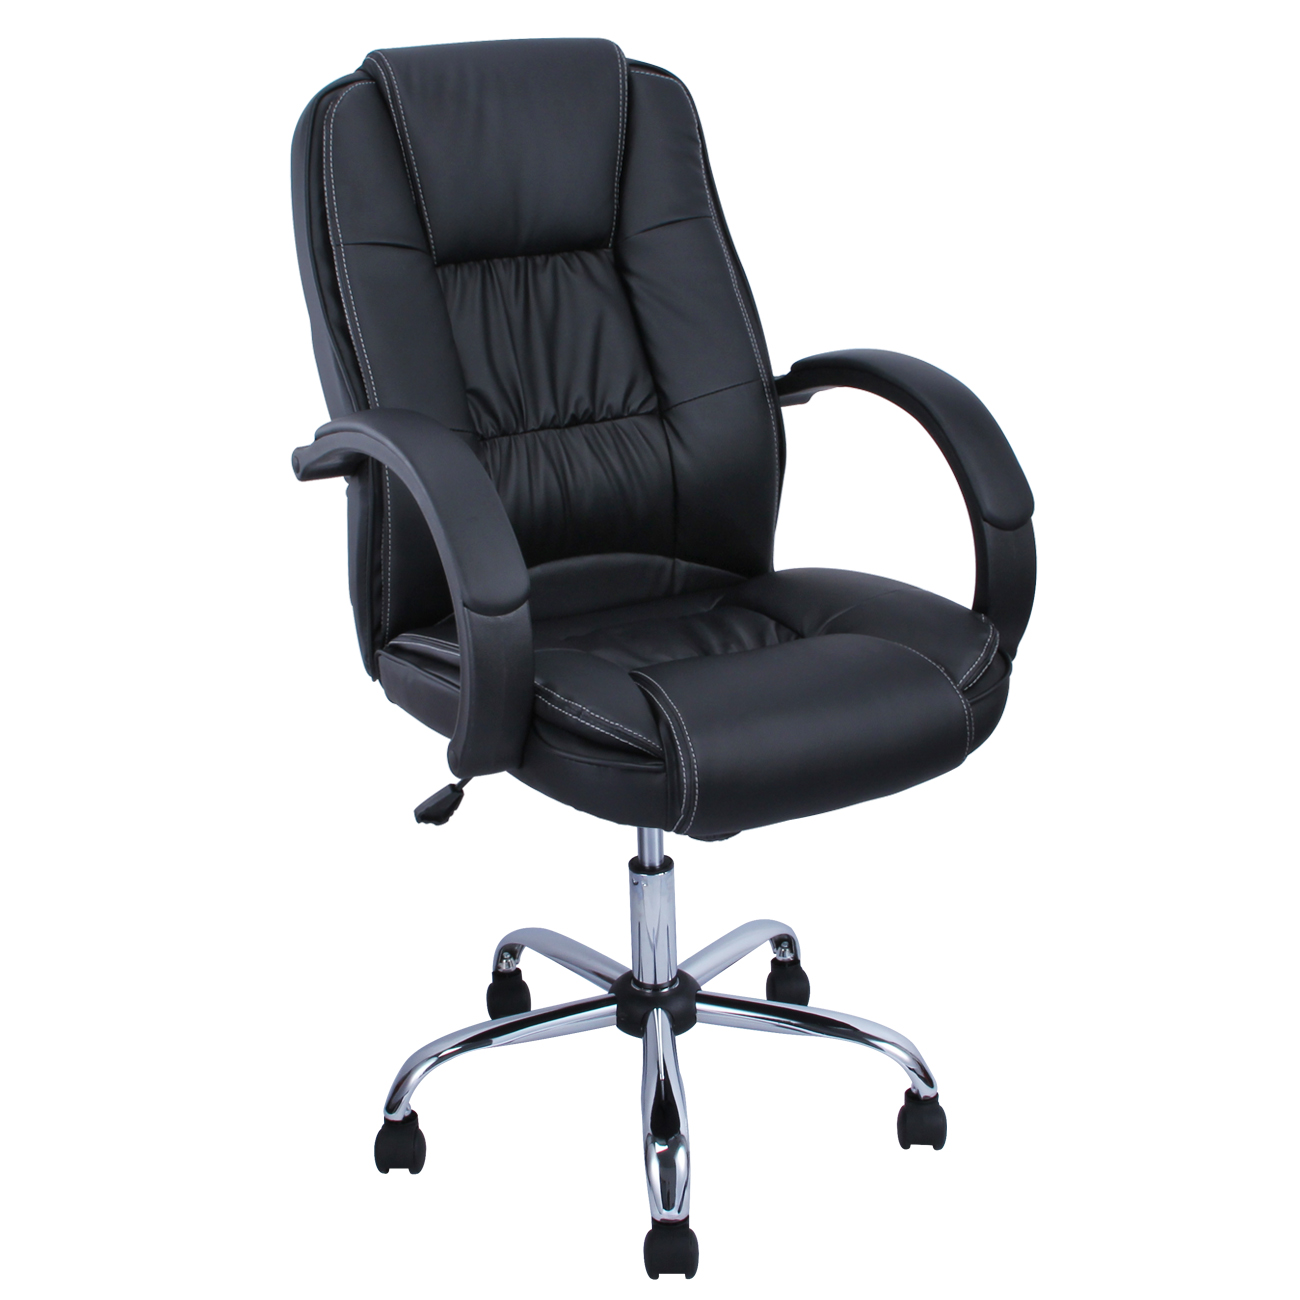 High Back PU Leather Executive Ergonomic Office Chair Desk Task Computer Blac